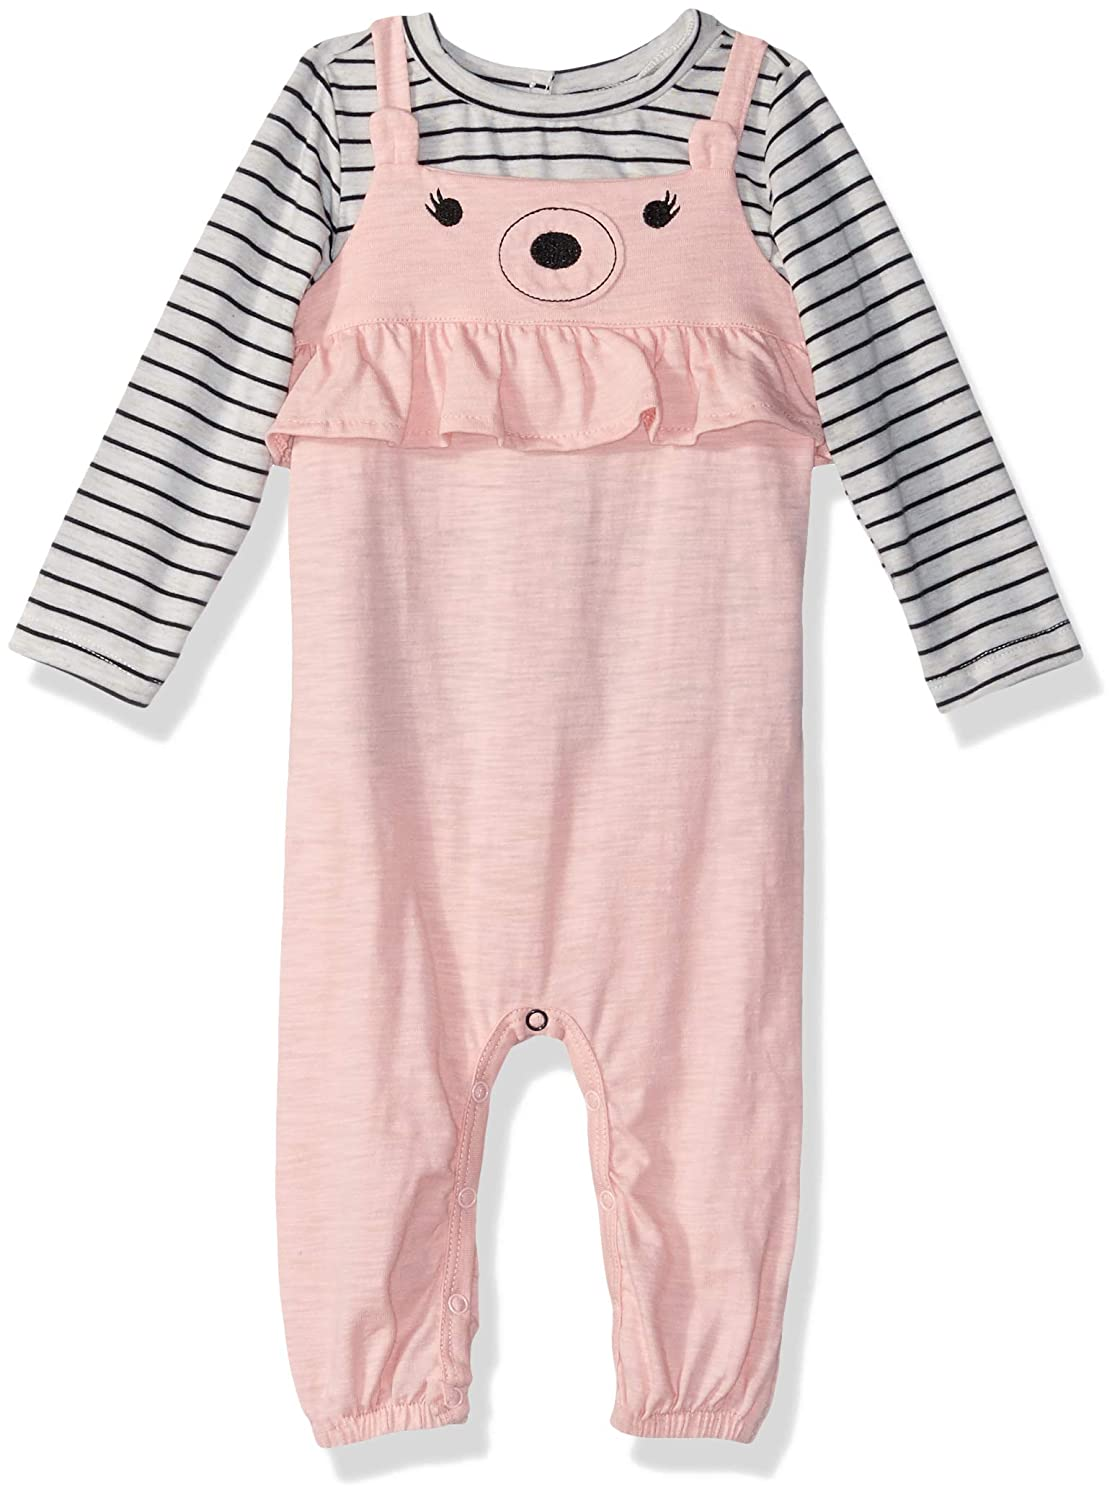 Amazon Com Jessica Simpson Baby Girls Long Sleeve Striped Top And